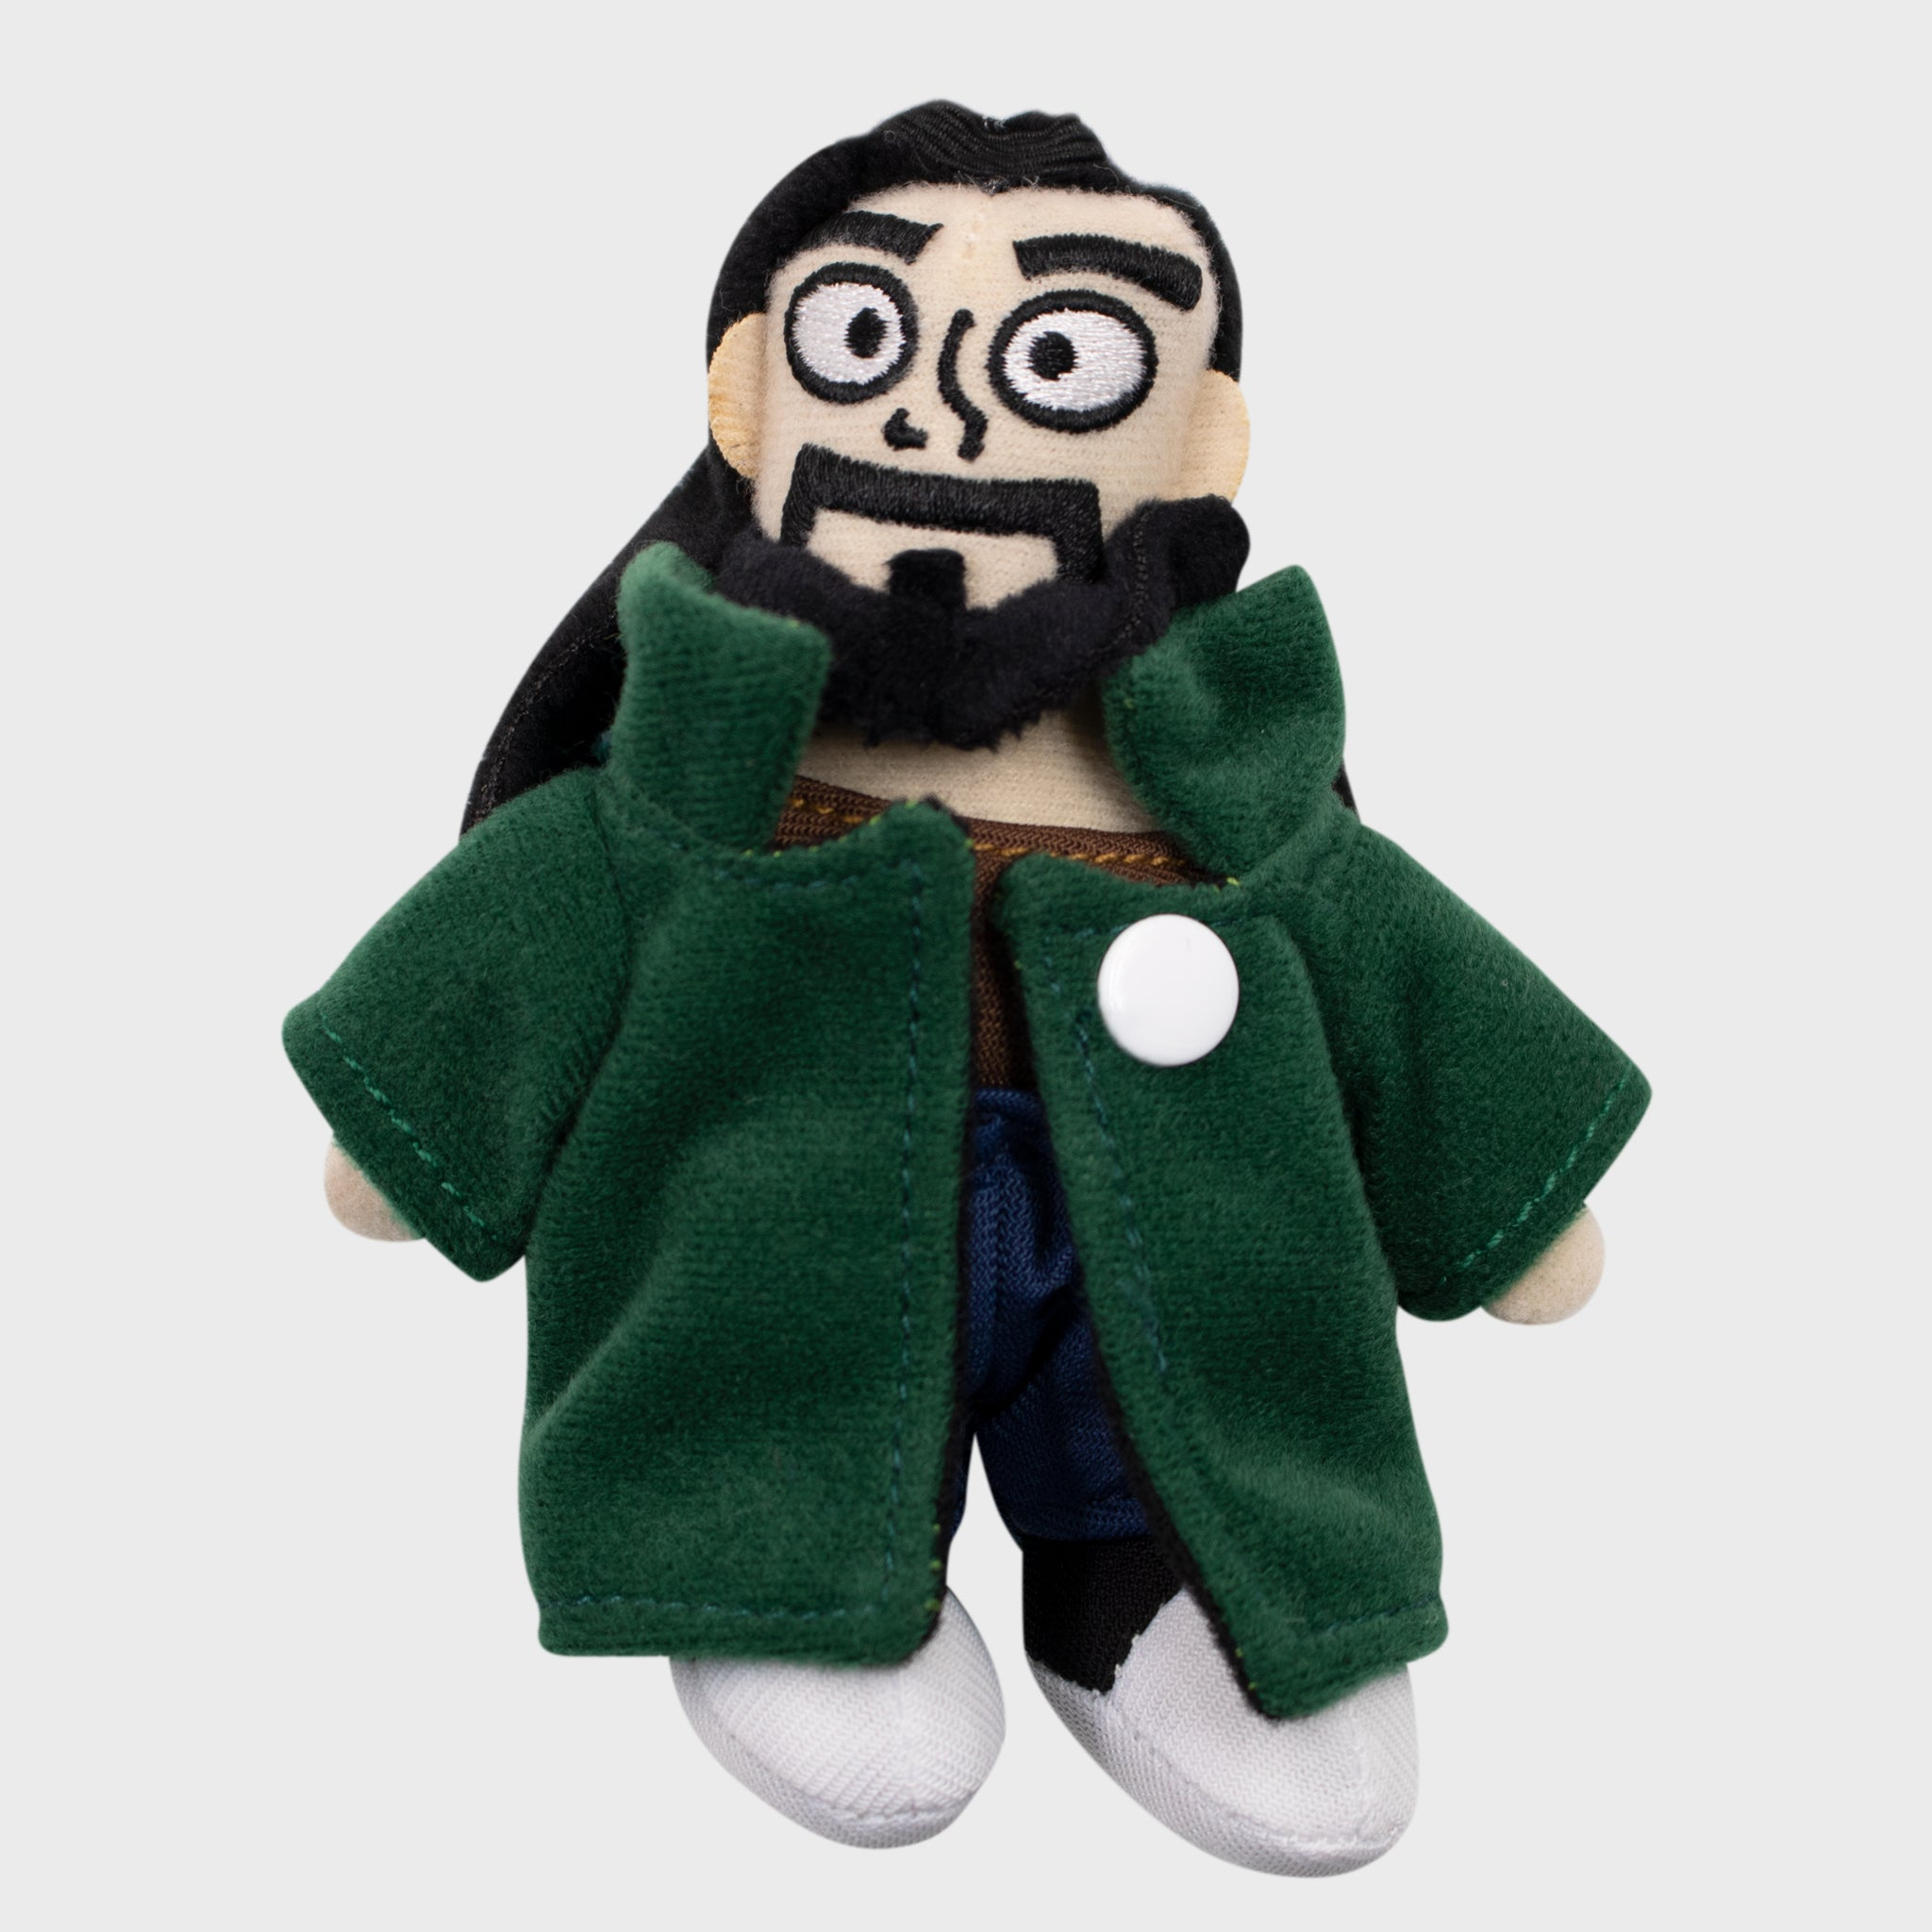 jay and silent bob box collectors box collectible plush doll exclusive kevin smith movie comedy culturefly